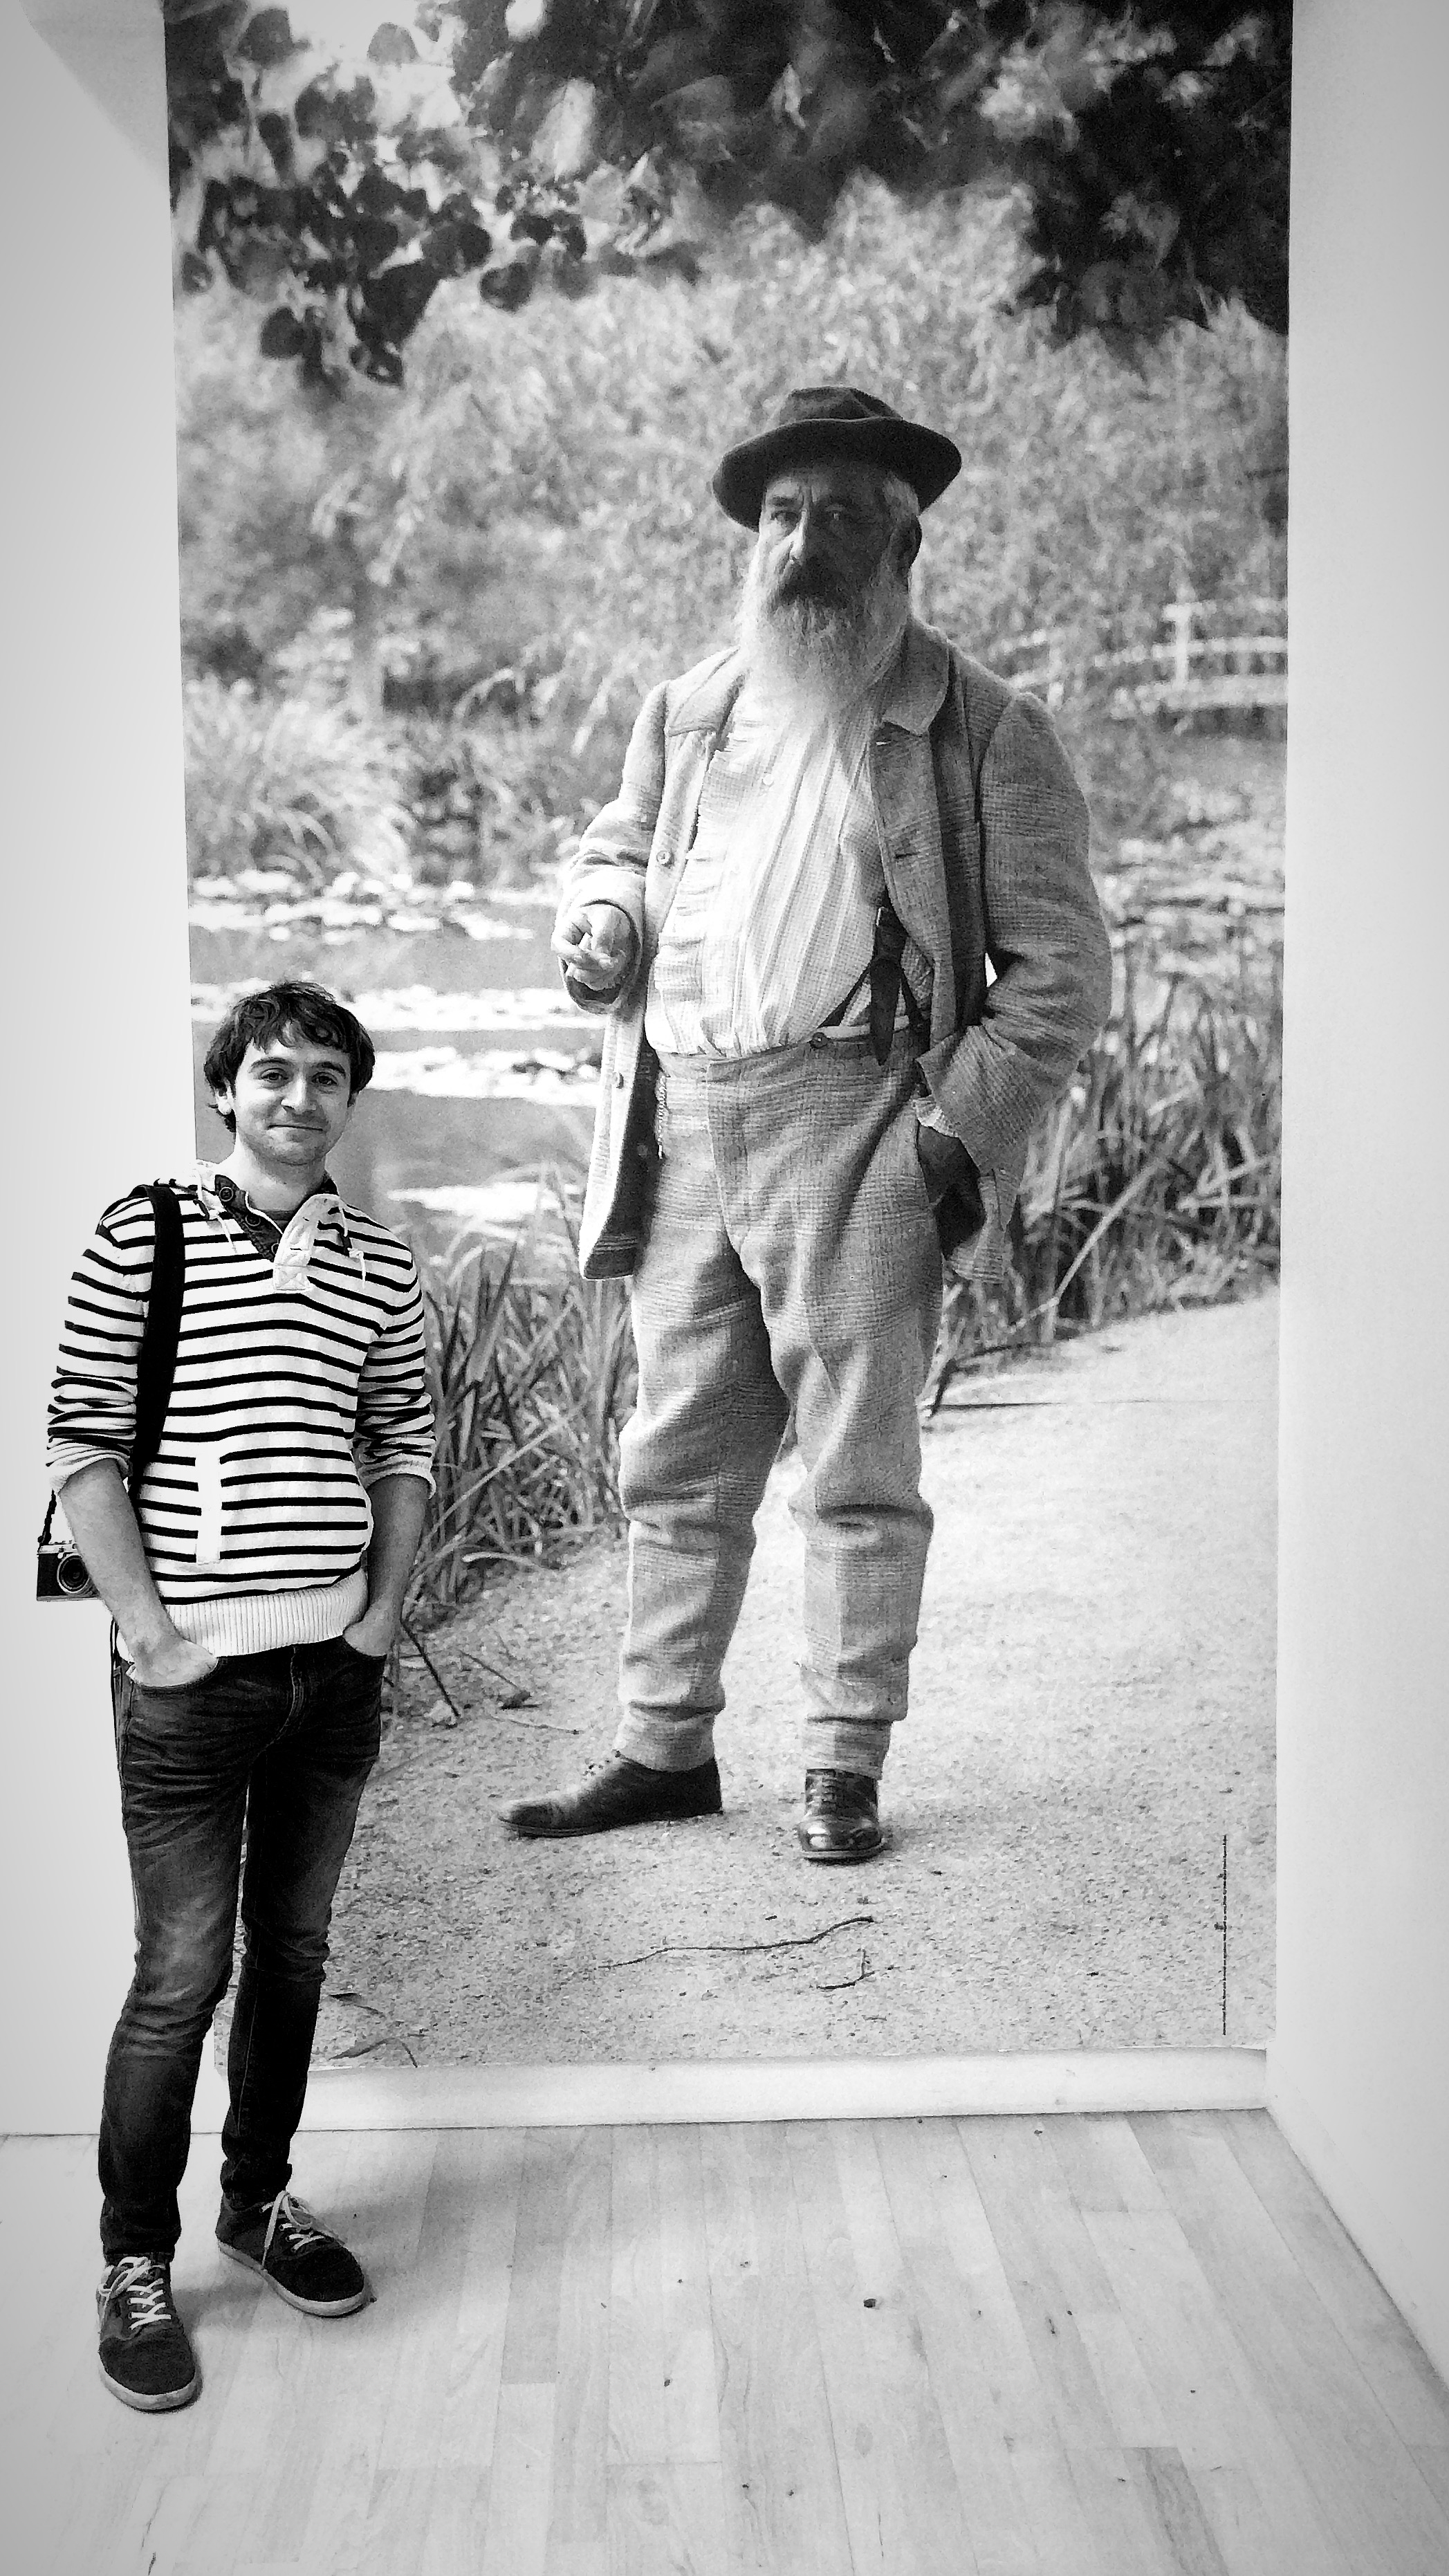 Tom and his buddy Claude at  Musée Marmottan Monet